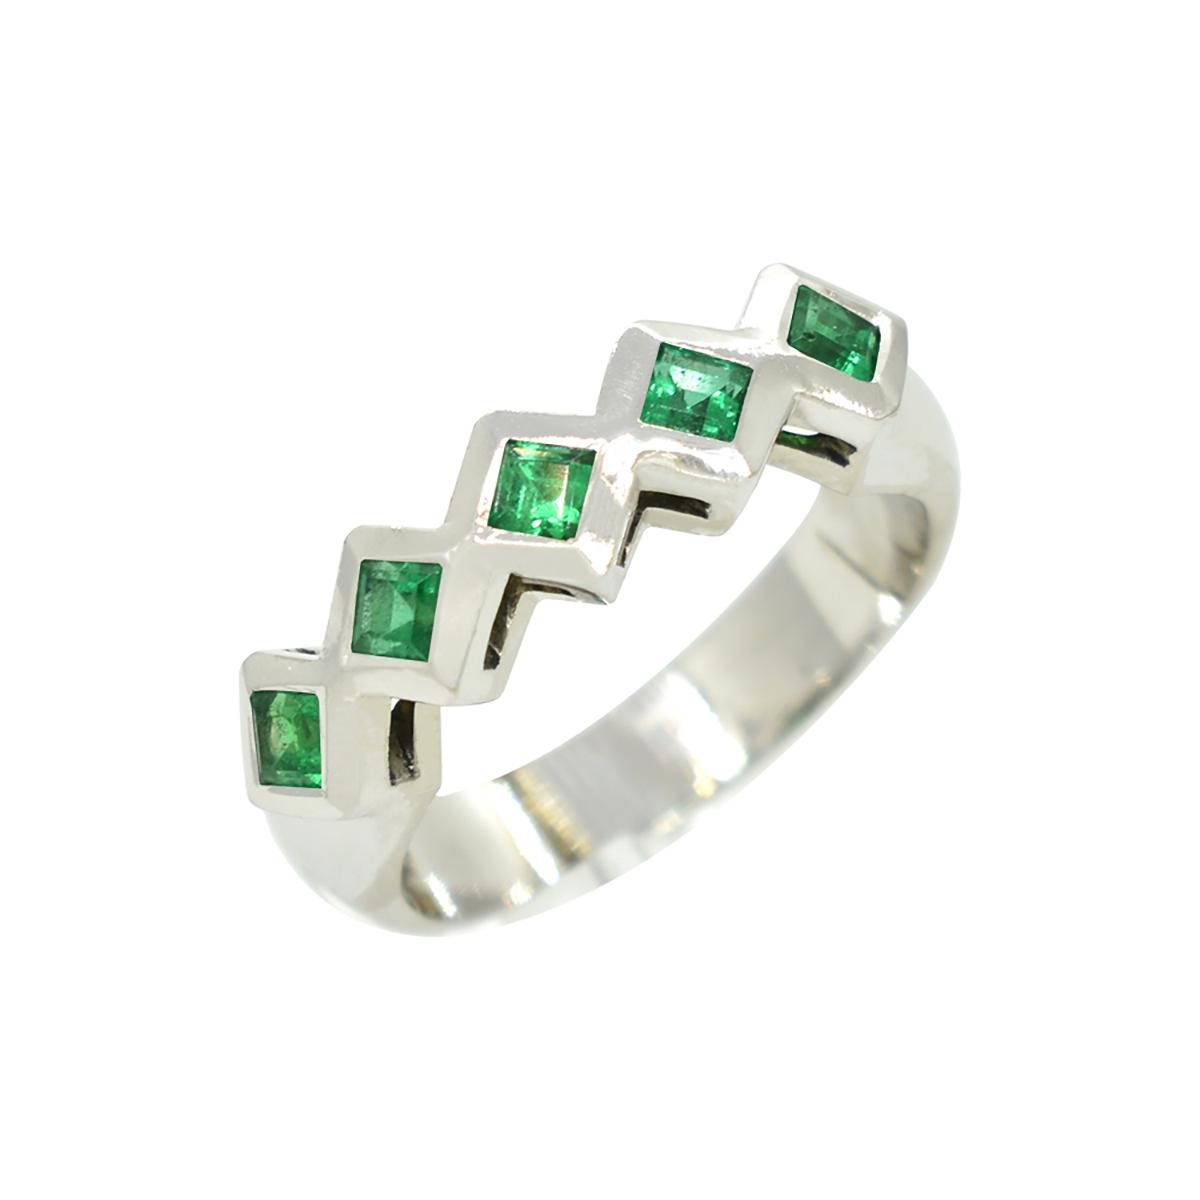 square-cut-emeralds-in-18k-white-gold-ring-in-bezel-setting-style